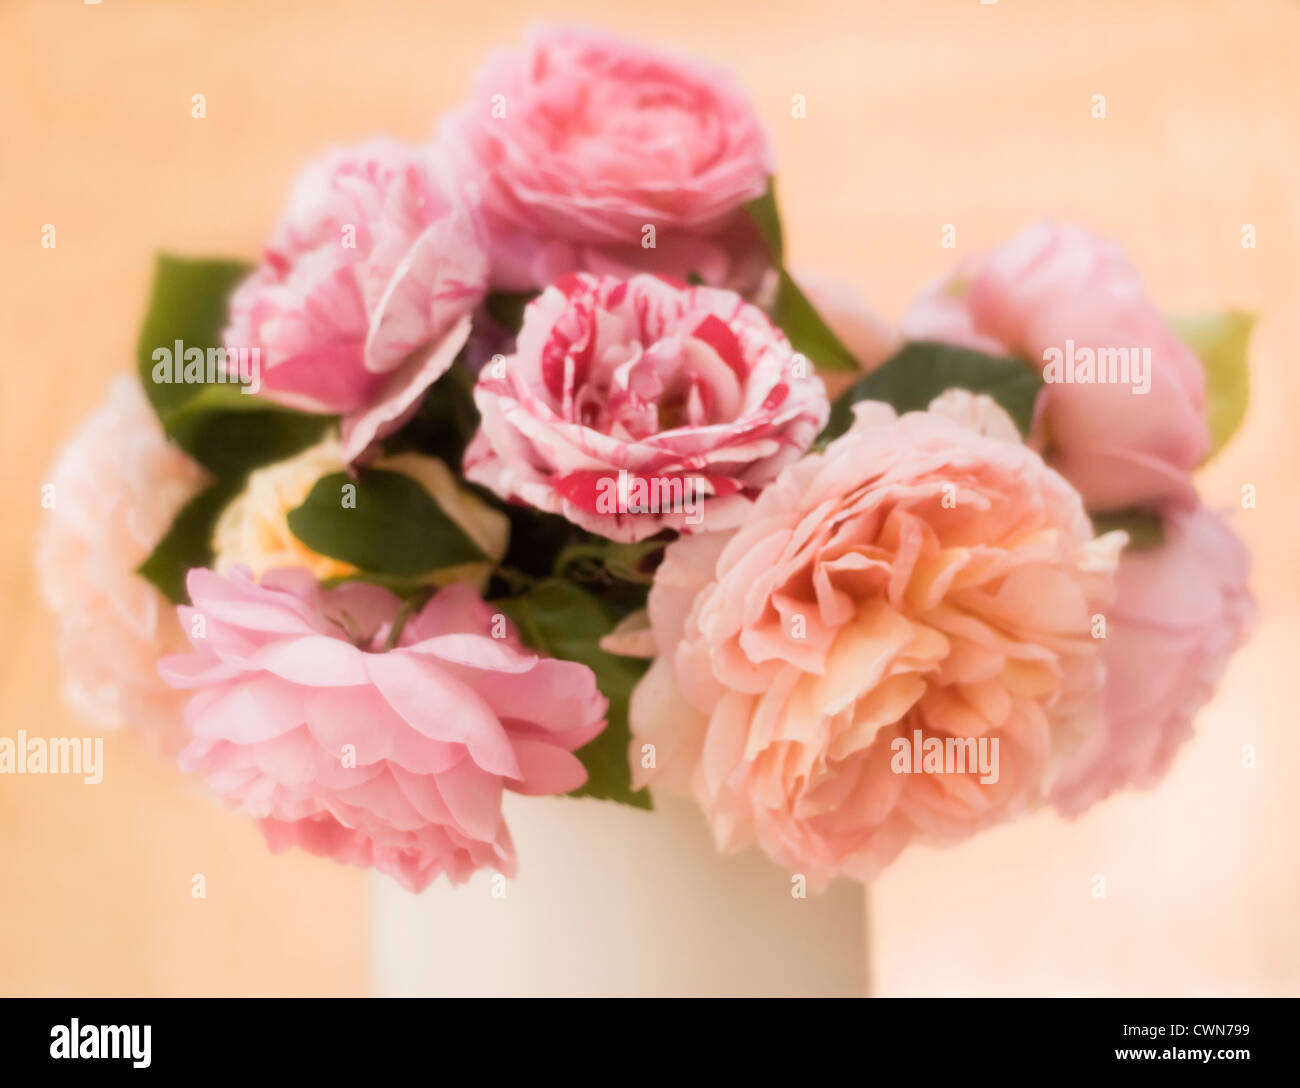 Rose, Rosa, a bunch of pink cut flowers arranged in a white ceramic vase. Stock Photo